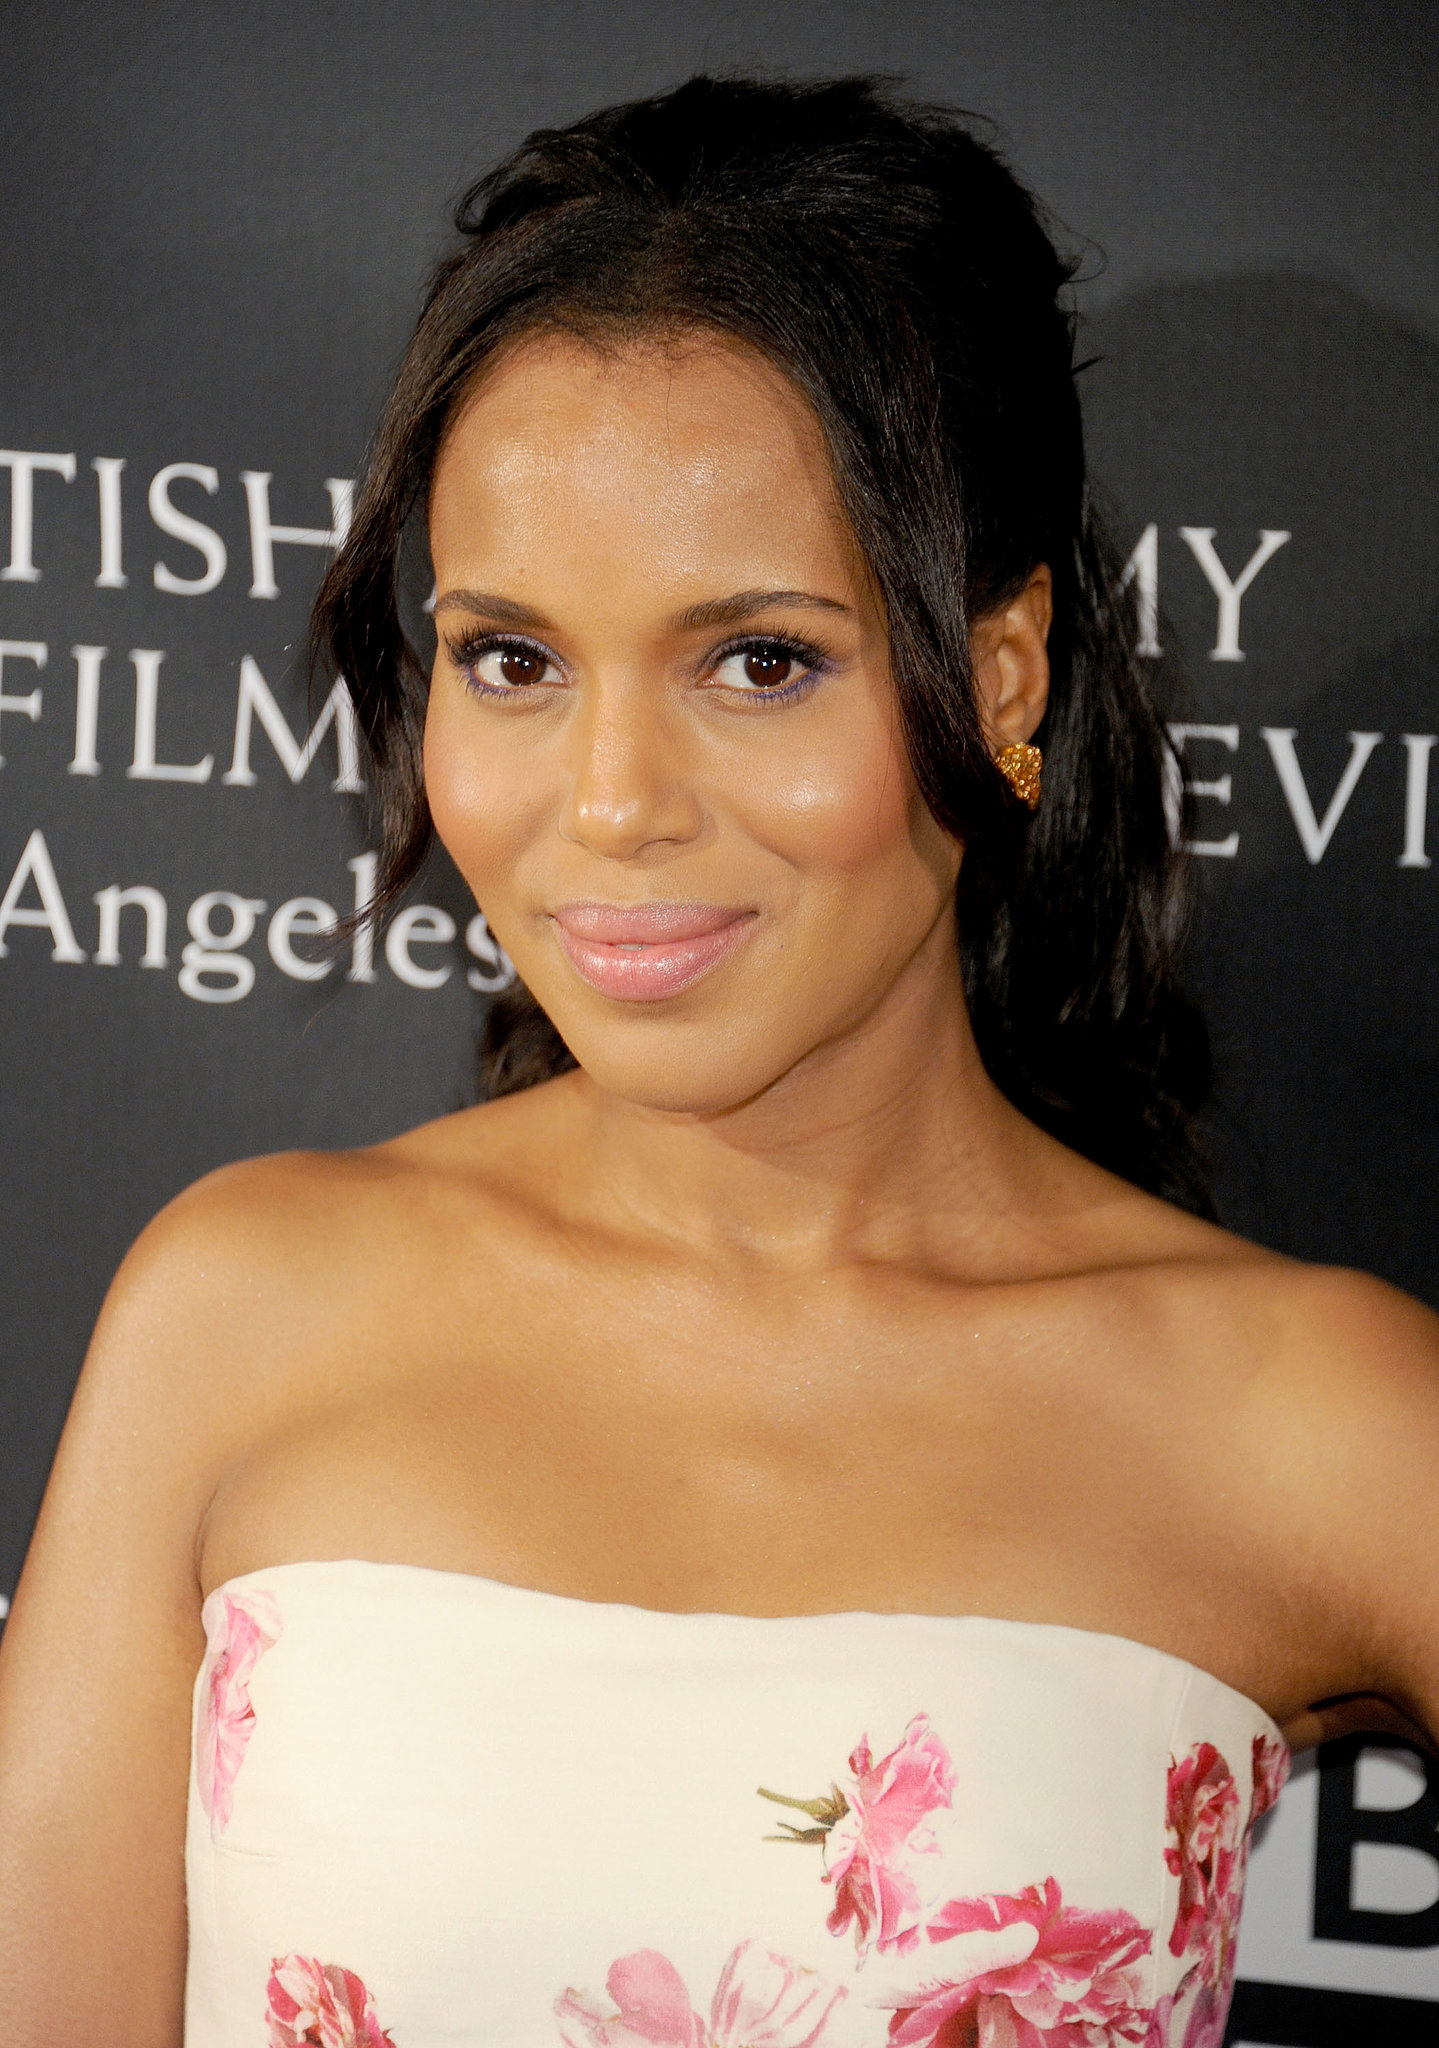 Kerry Washington played with pinks and purples at the BAFTA LA